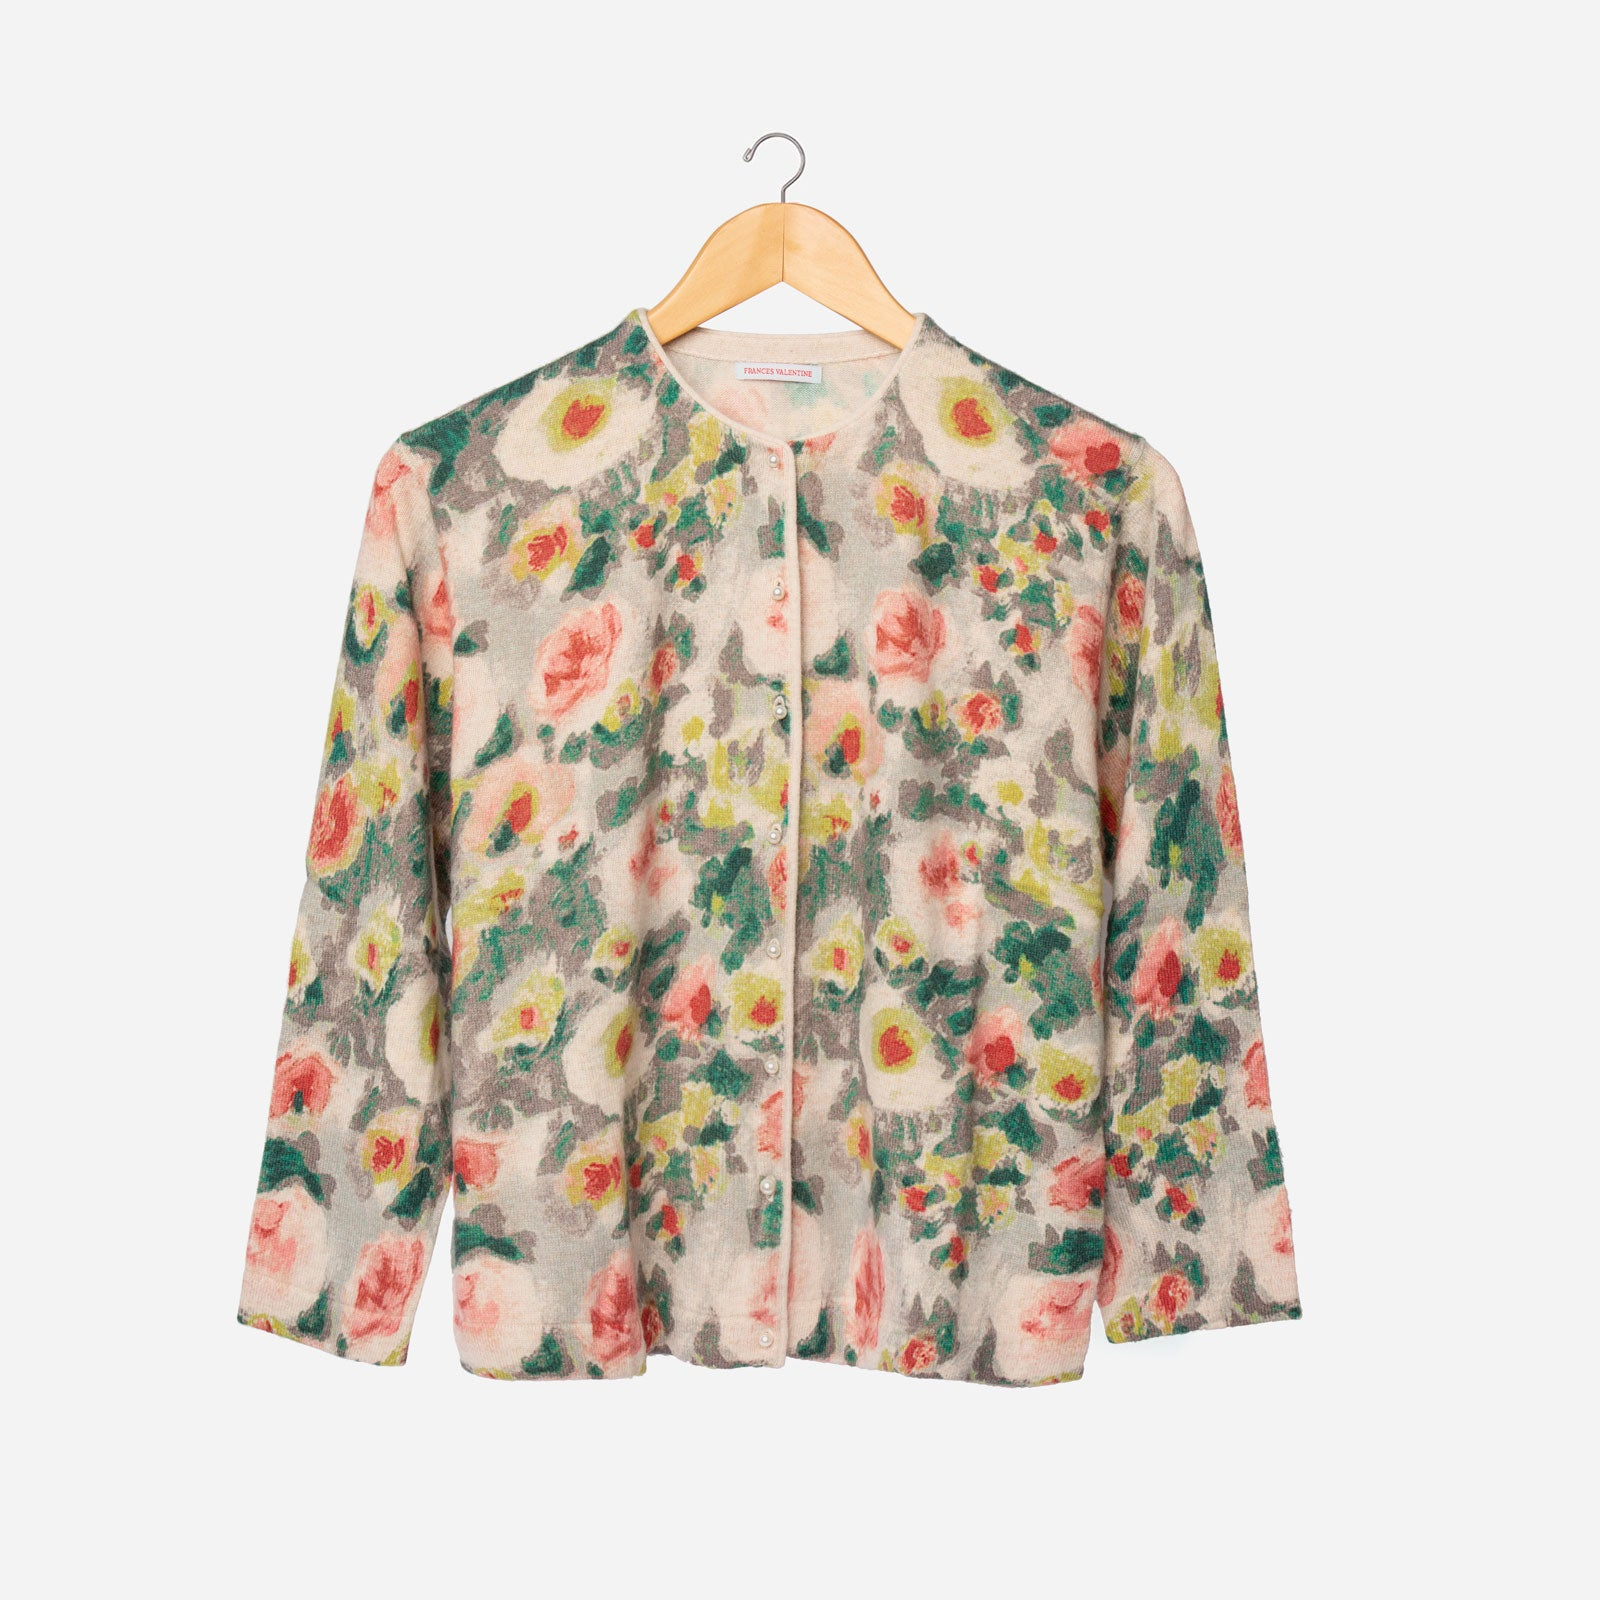 Lyon Floral Sweater